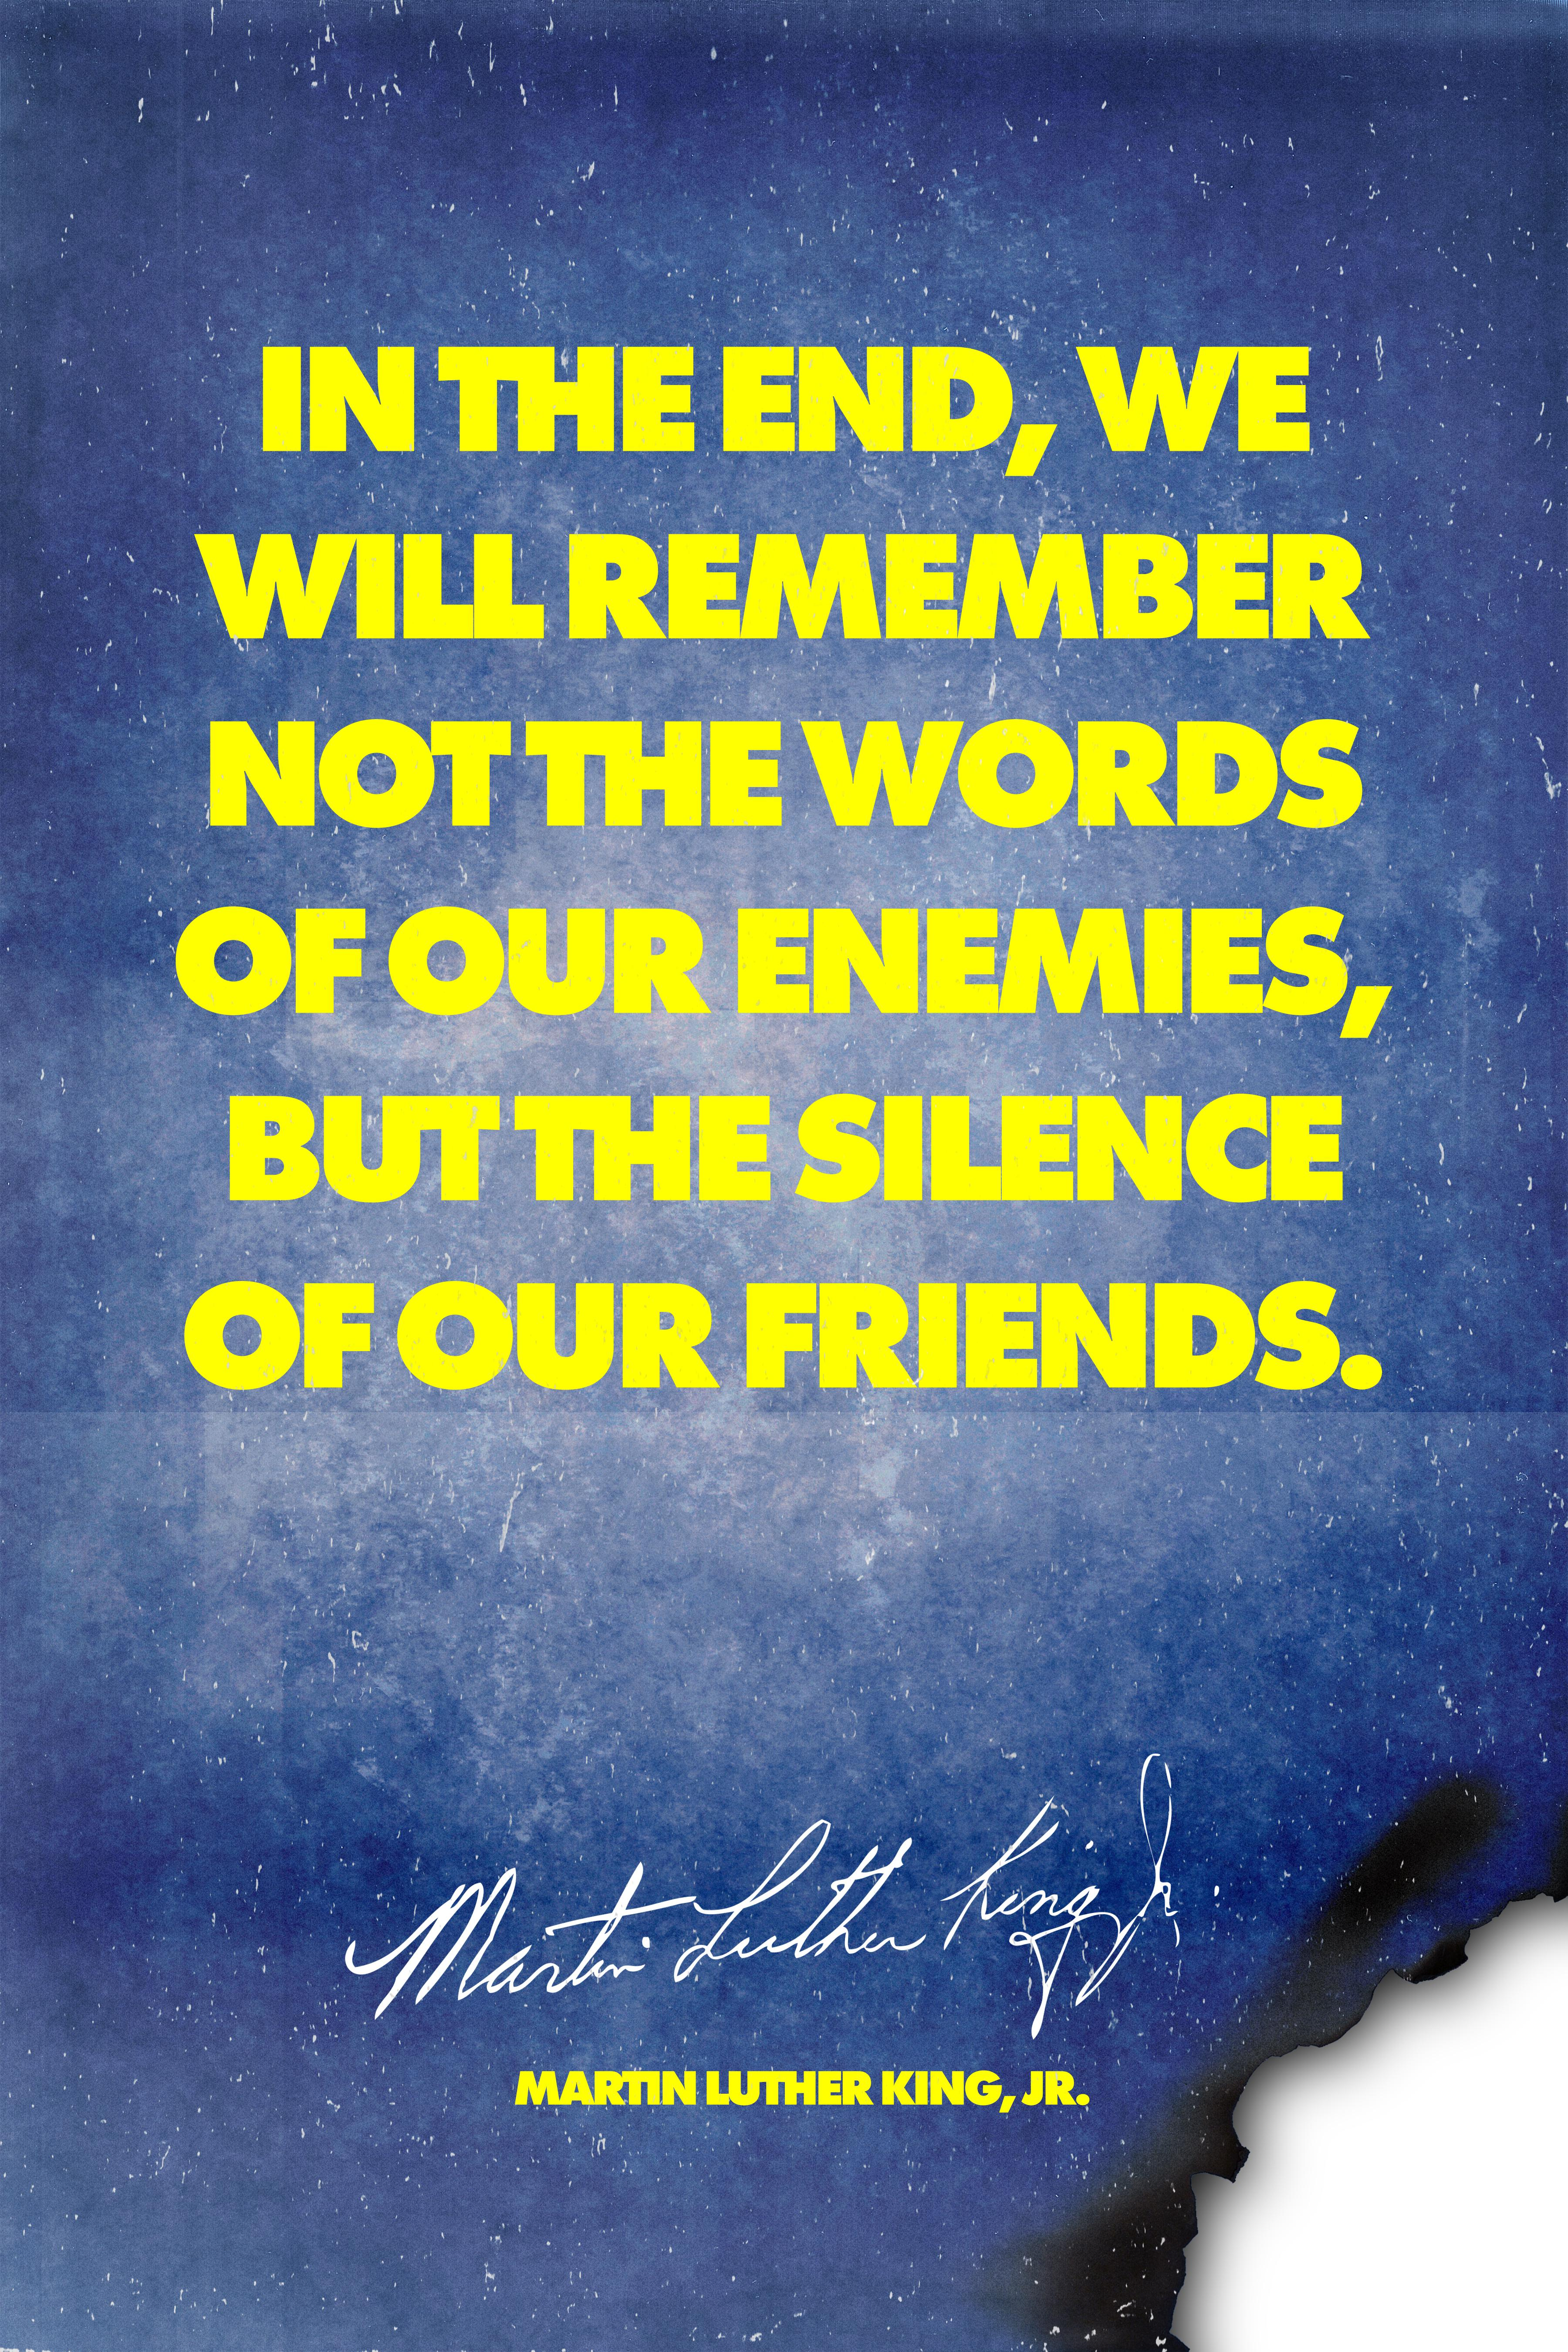 """In the end, we will remember not the words of our enemies, but the silence of our friends."" Martin Luther King Jr. 3600×5400."